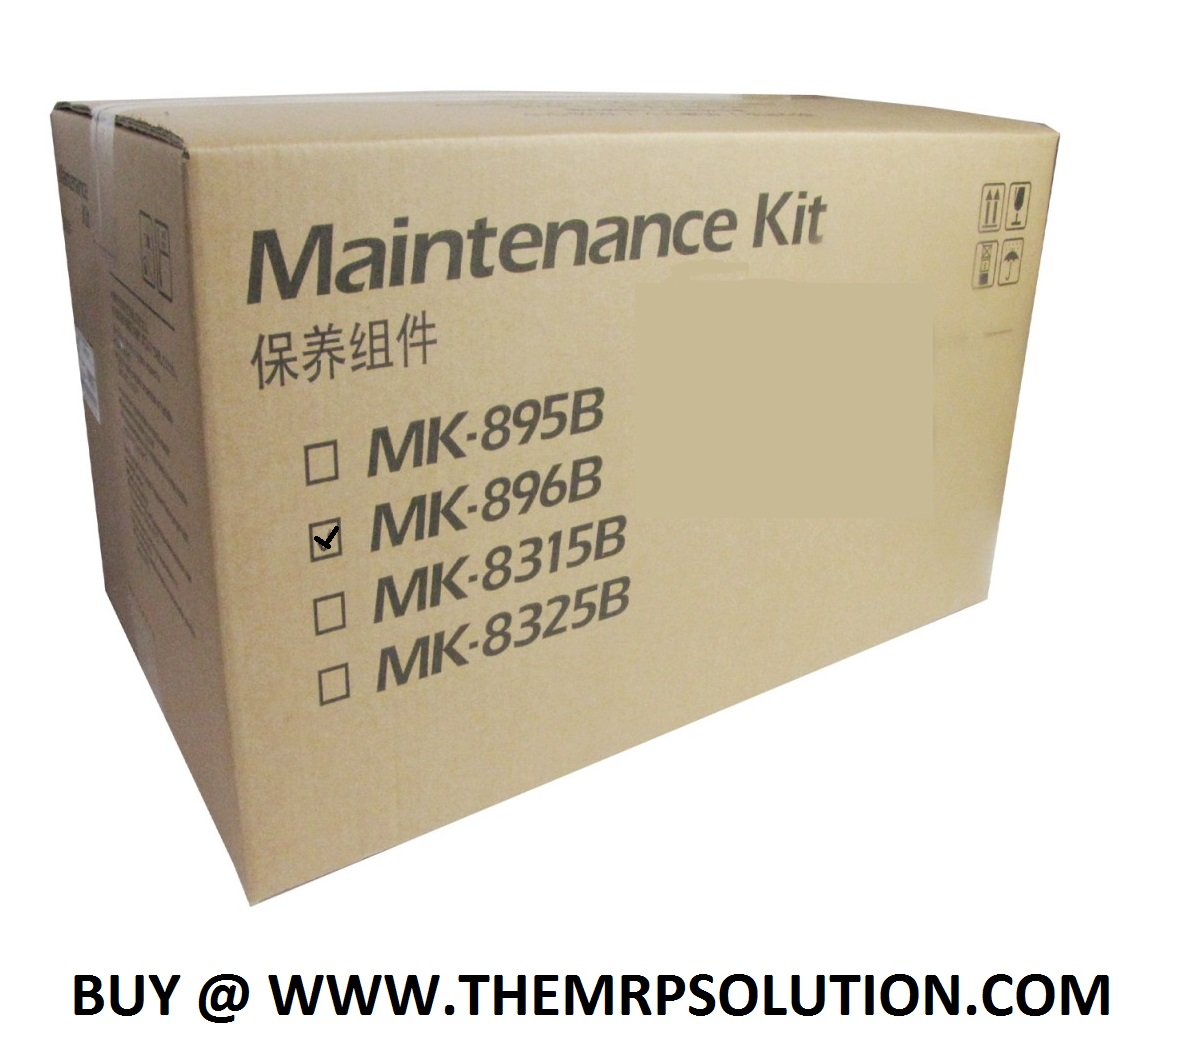 MK-896B*, MAINT KIT CMY 200K YIELD NEW by the MRP Solution